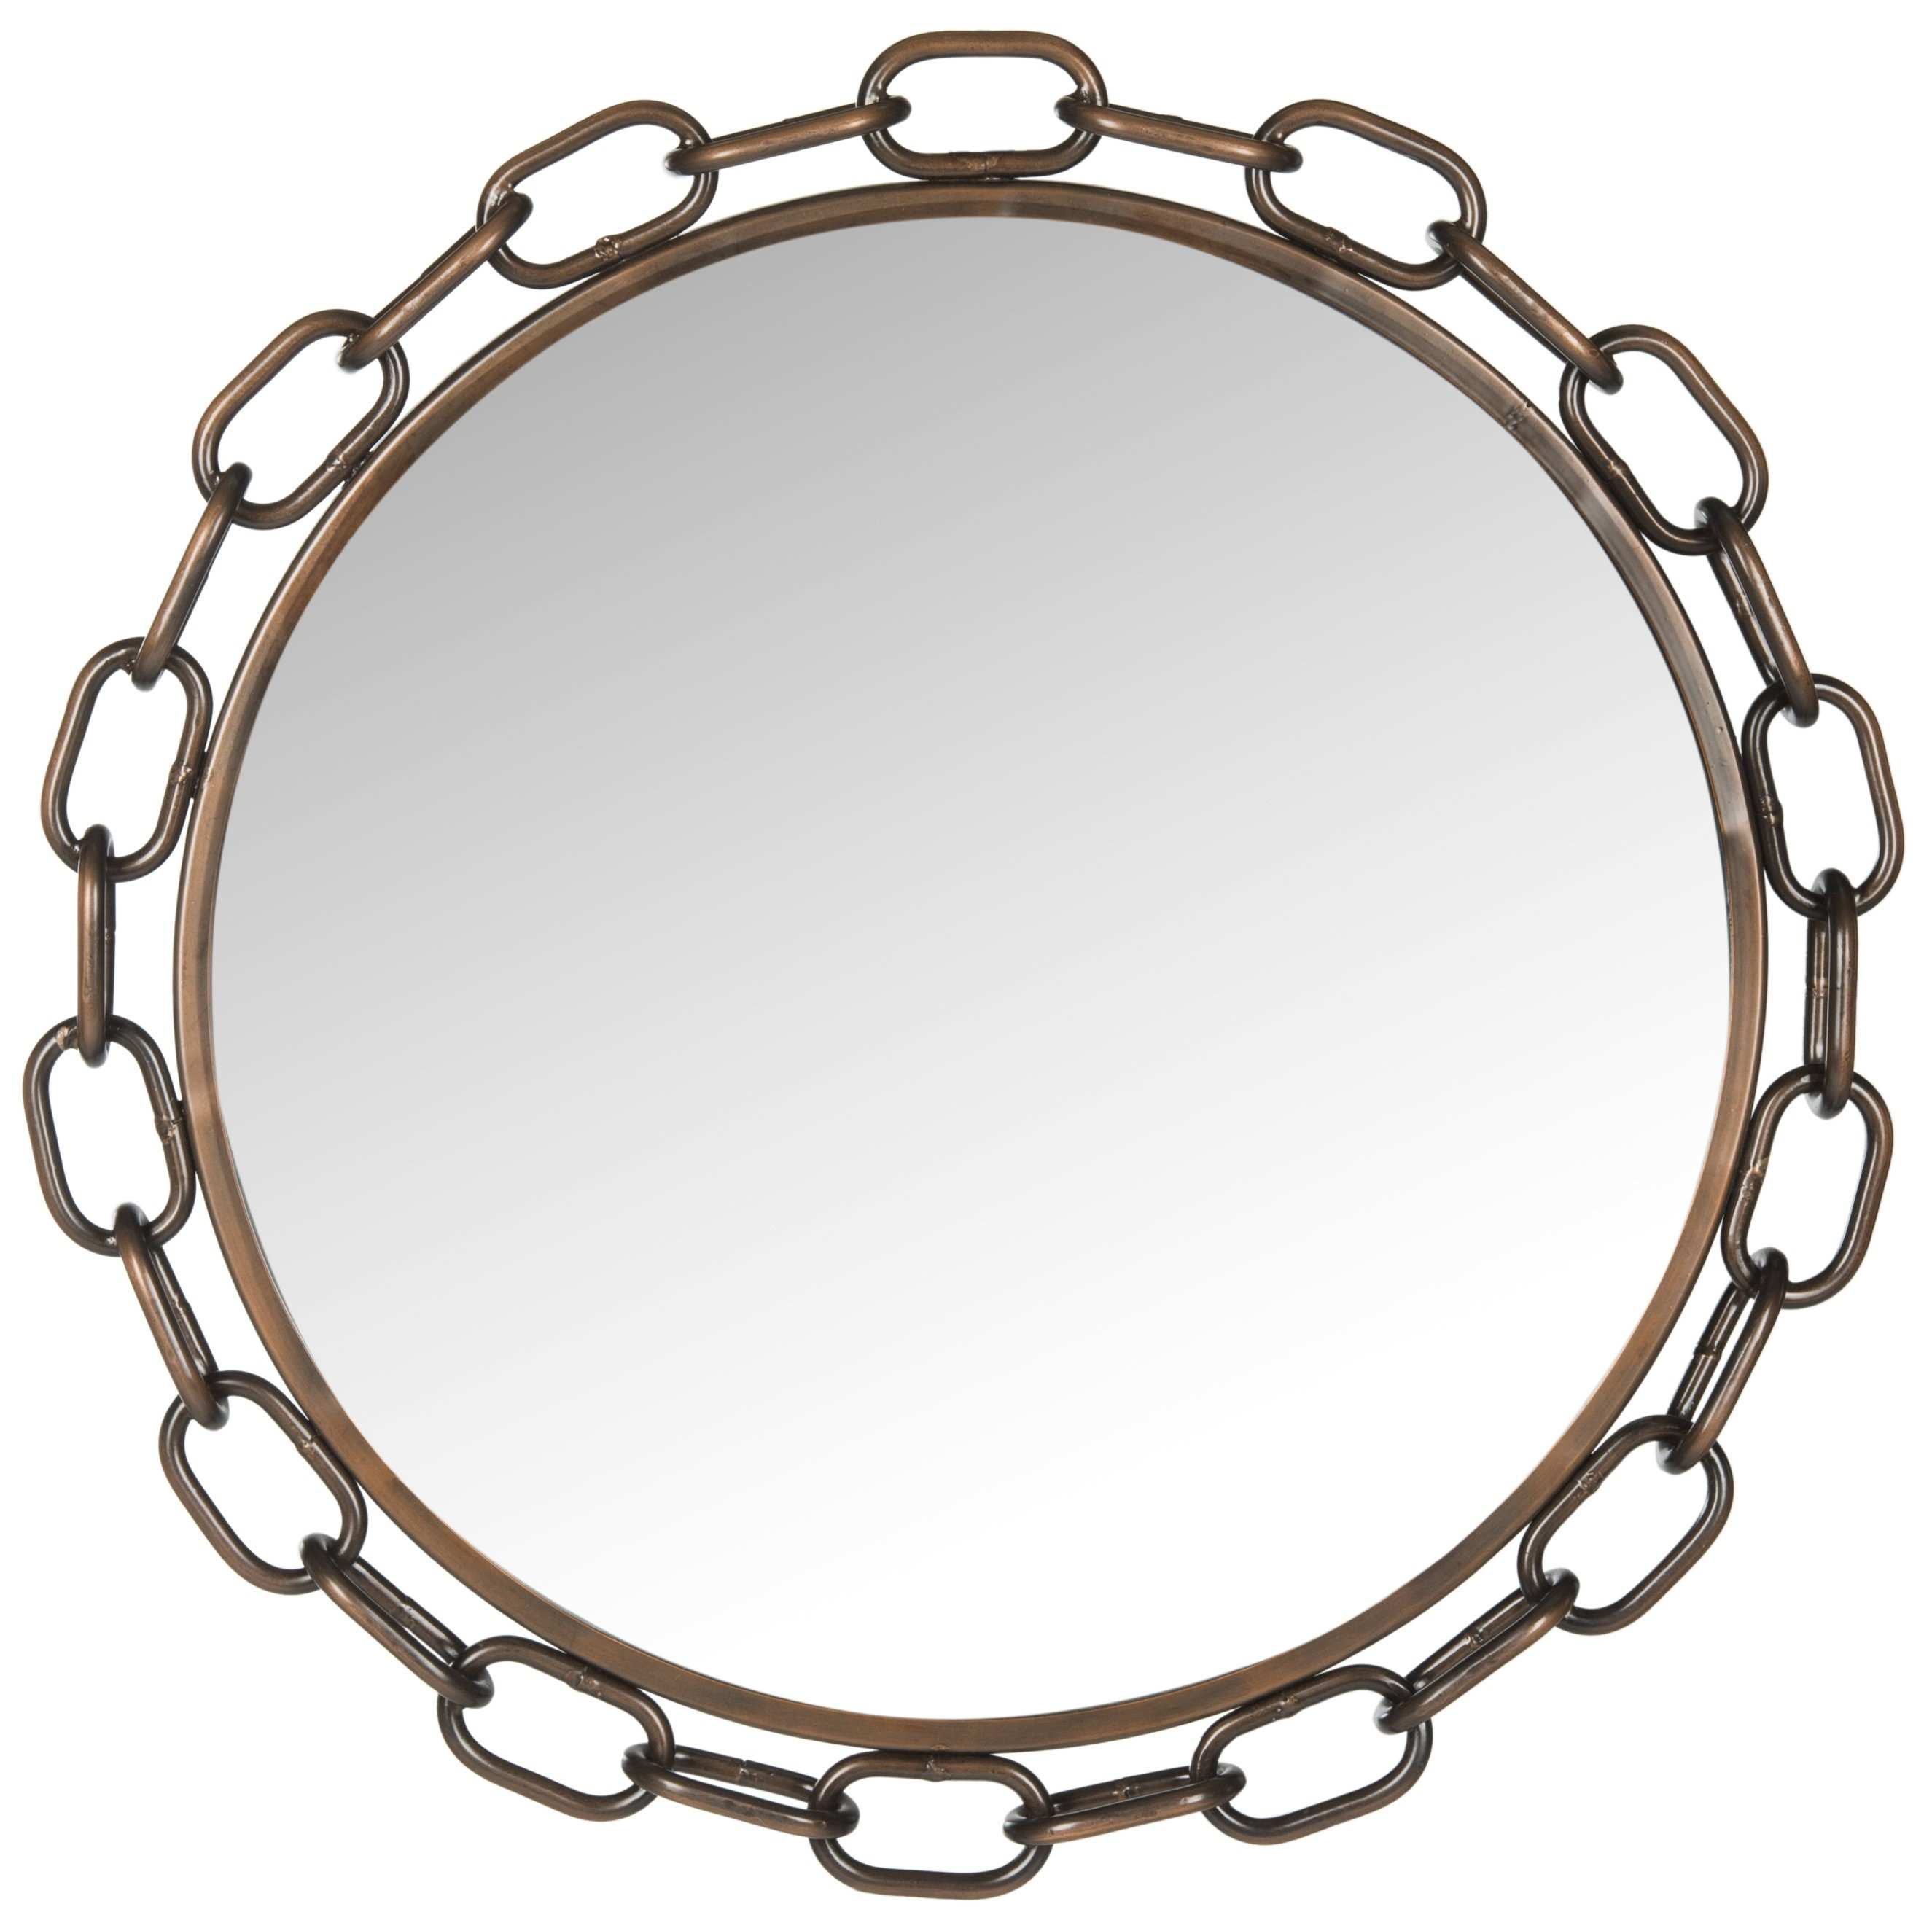 Safavieh Atlantis Chainlink Wall Mirror & Reviews